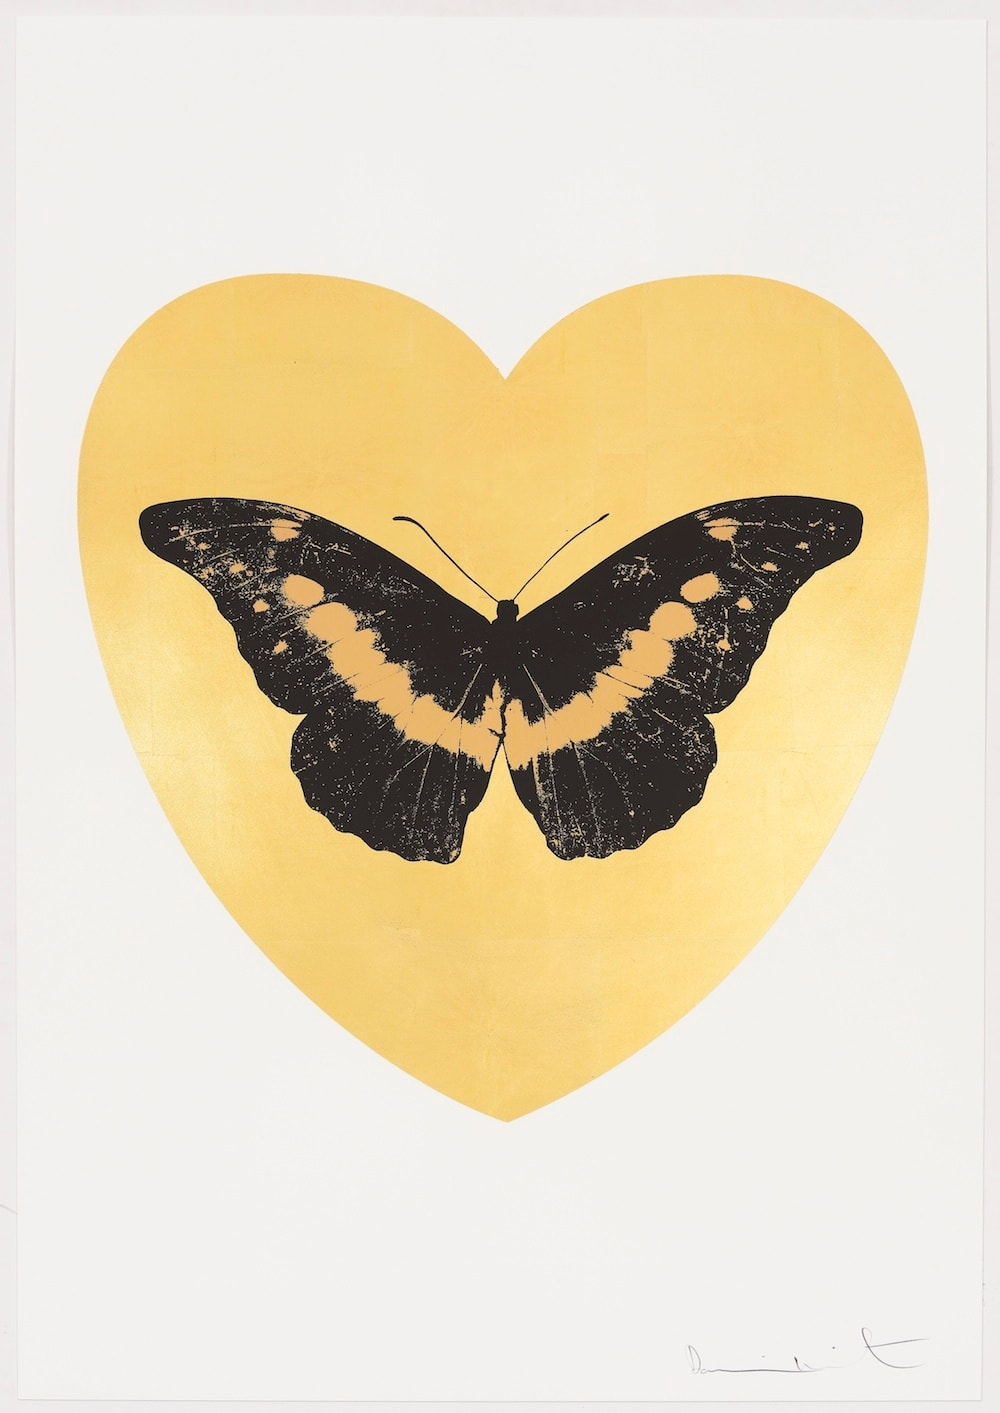 Damien Hirst I Love You - gold leaf, black, cool gold, 2015 Gold leaf and 2 colour foil block on Somerset Satin 410gsm. OC10329 100 x 70 cm Edition of 14 Signed and numbered